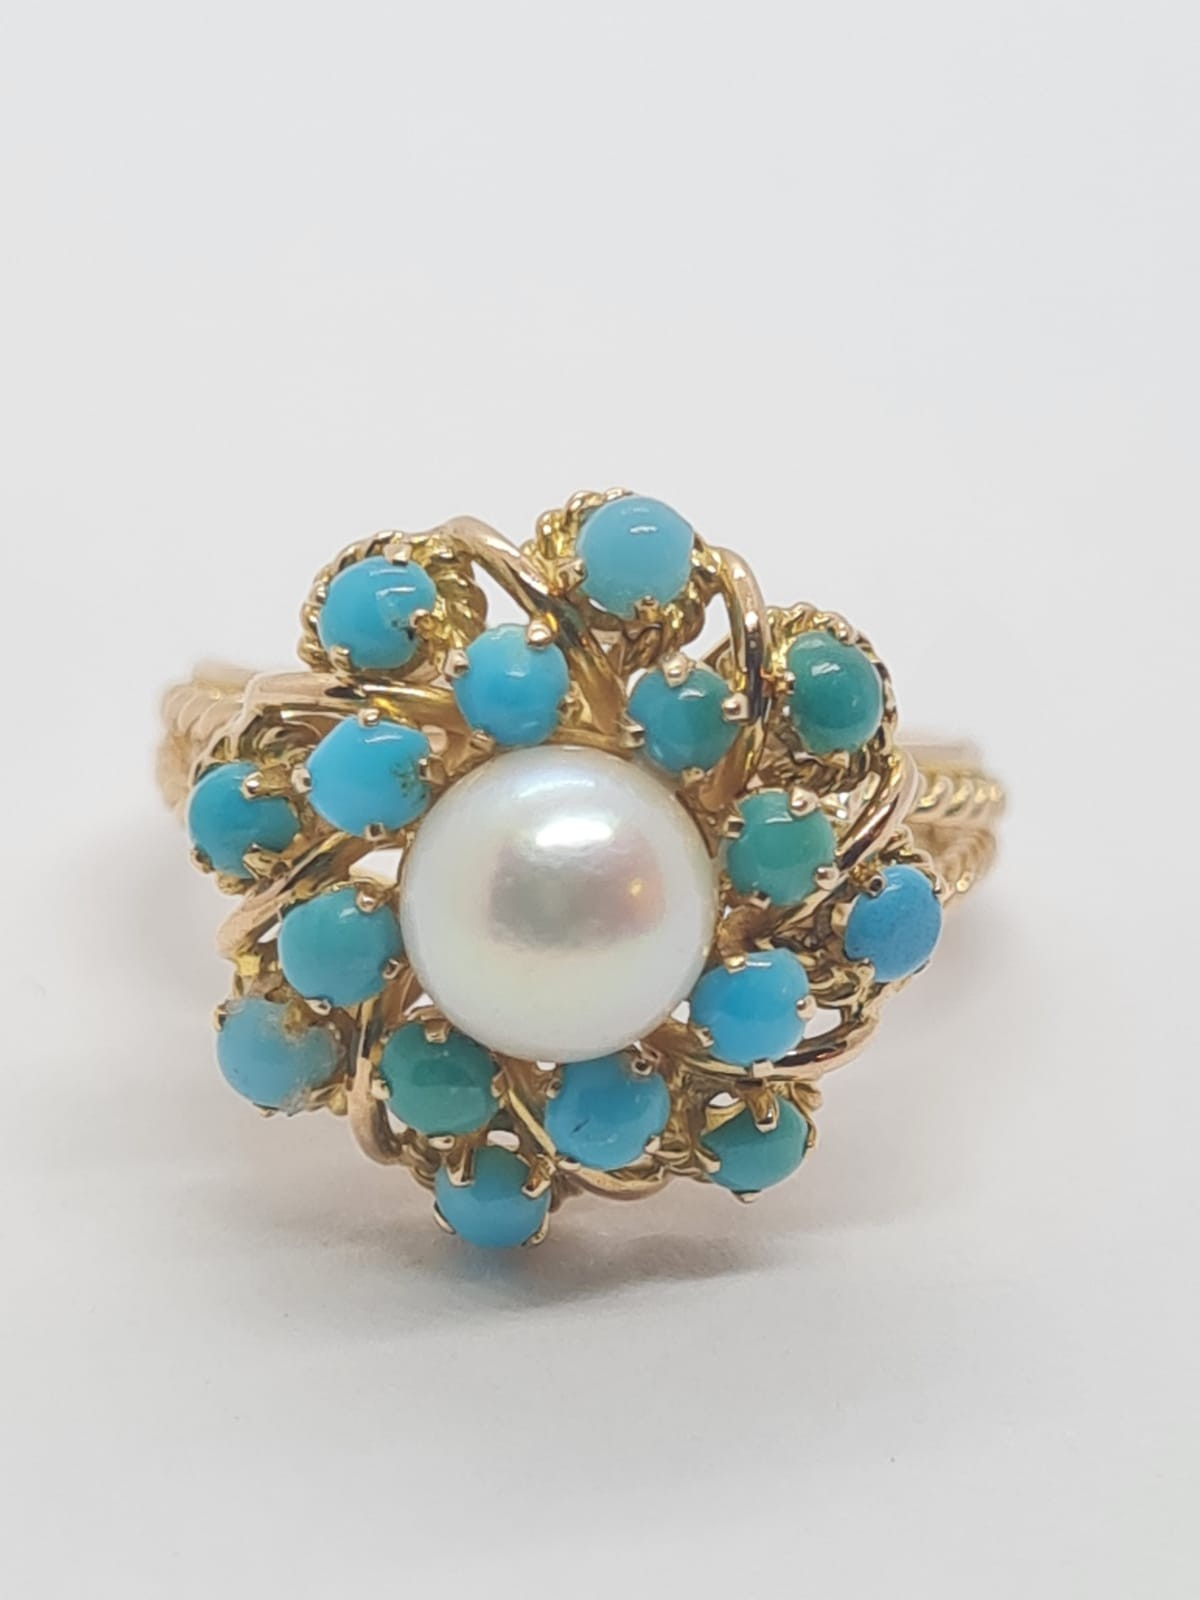 18k yellow gold TURQUISE AND PEARL CLUSTER RING, weight 5.3g and size J1/2 - Image 7 of 8